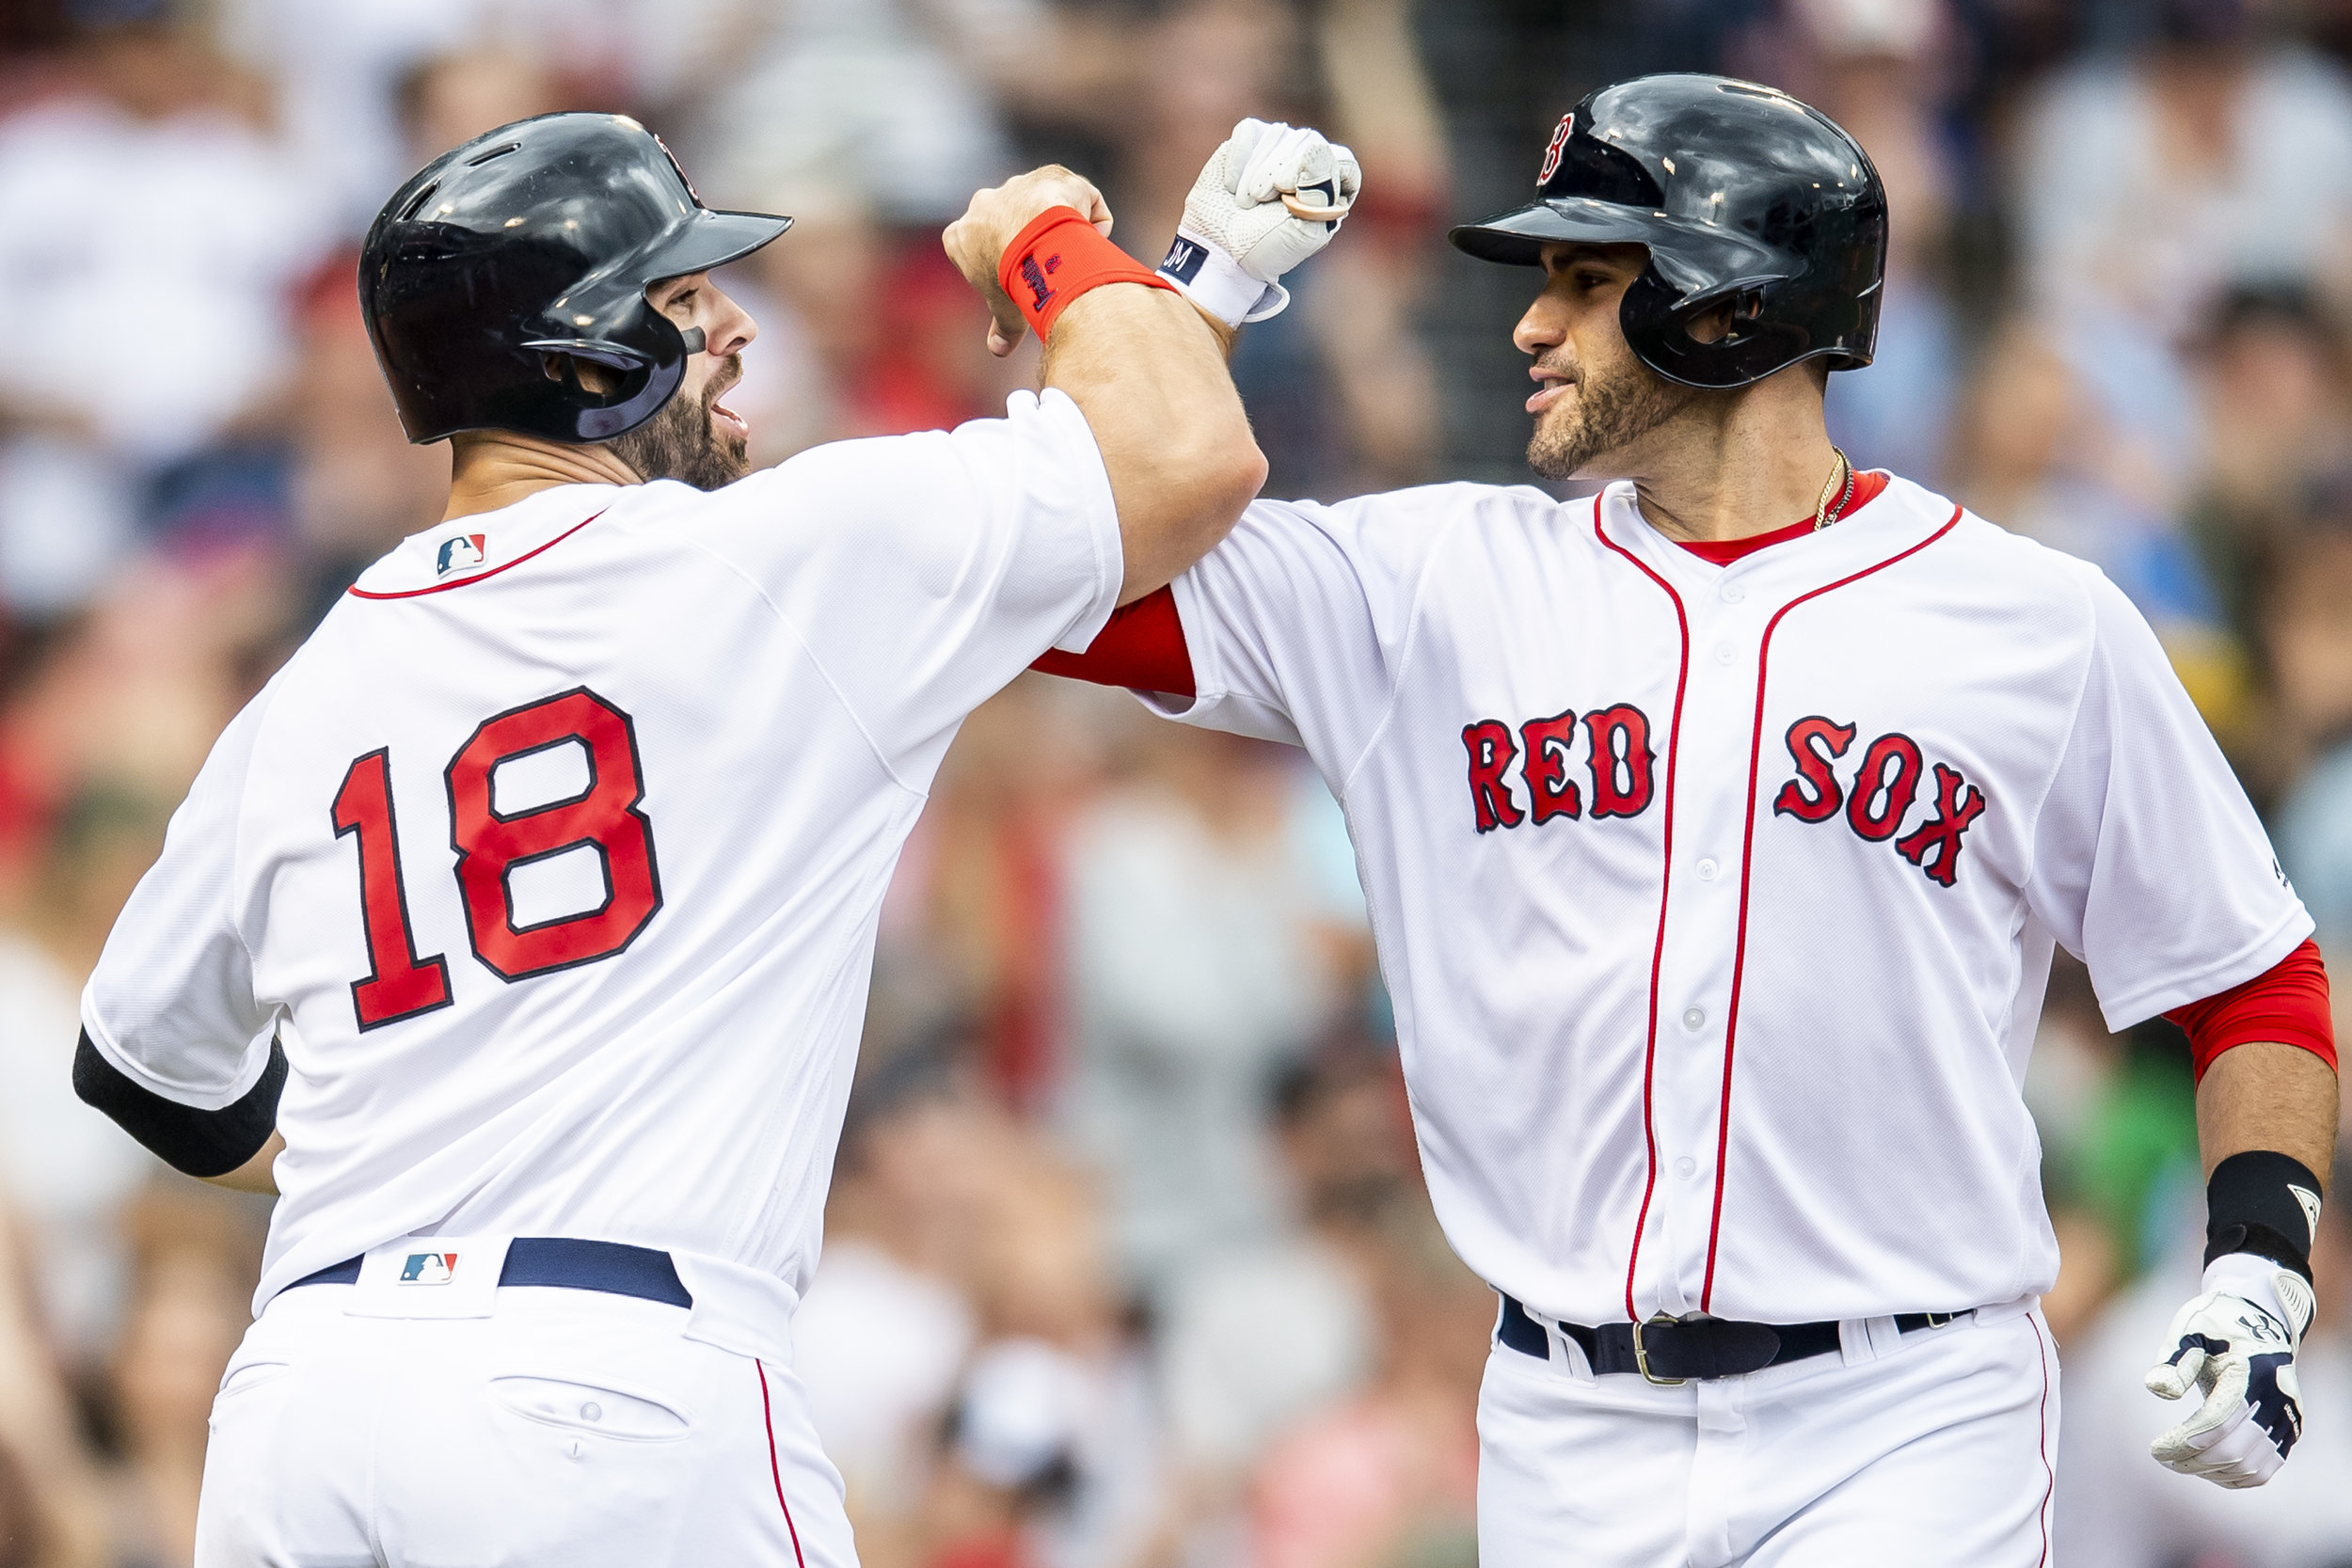 May 20, 2018, Boston, MA: Boston Red Sox designated hitter J.D. Martinez celebrates hitting a home run with Boston Red Sox first basemen Mitch Moreland as the Boston Red Sox face the Baltimore Orioles at Fenway Park in Boston, Massachusetts on Saturday, May 20, 2018. (Photo by Matthew Thomas/Boston Red Sox)